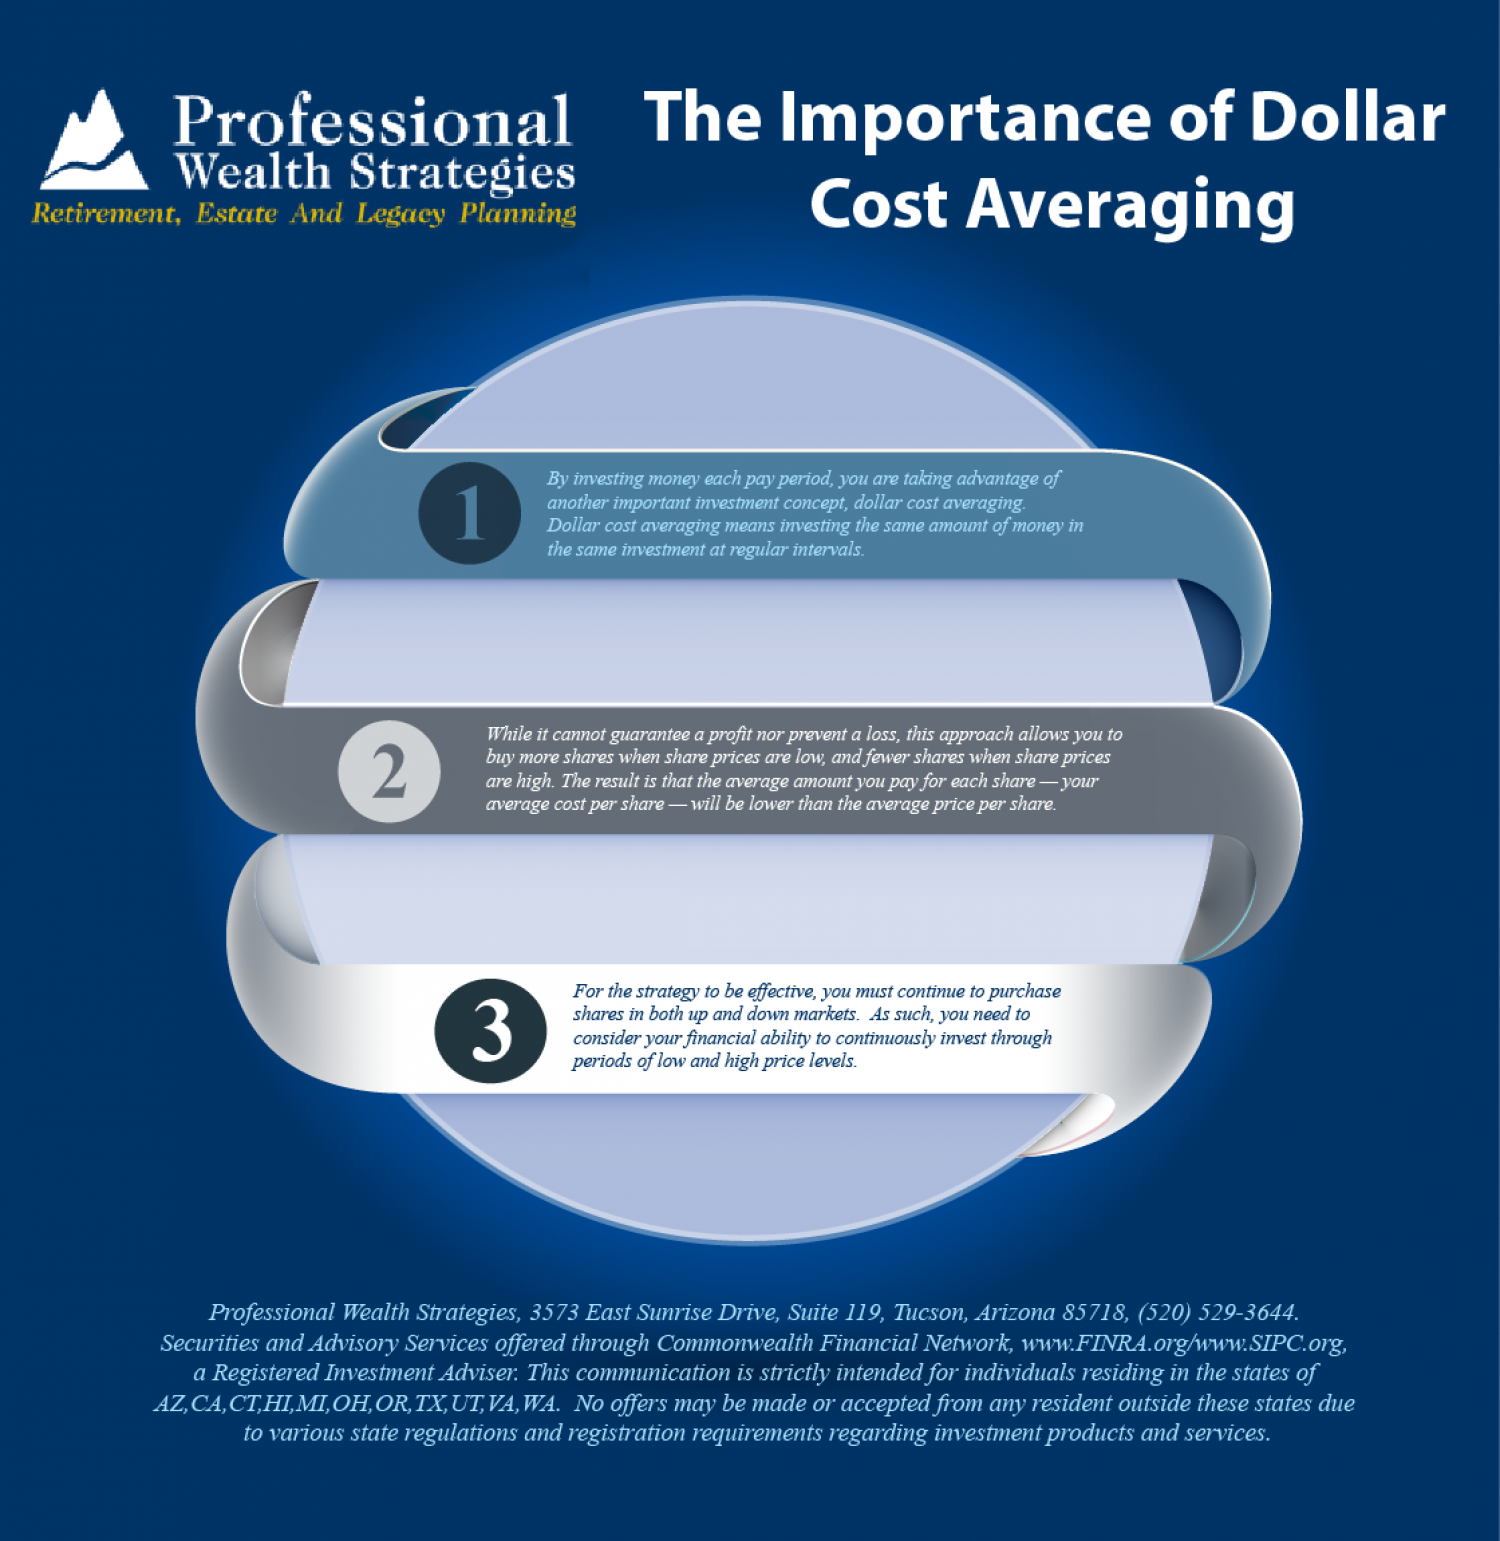 The Importance of Dollar Cost Averaging Infographic